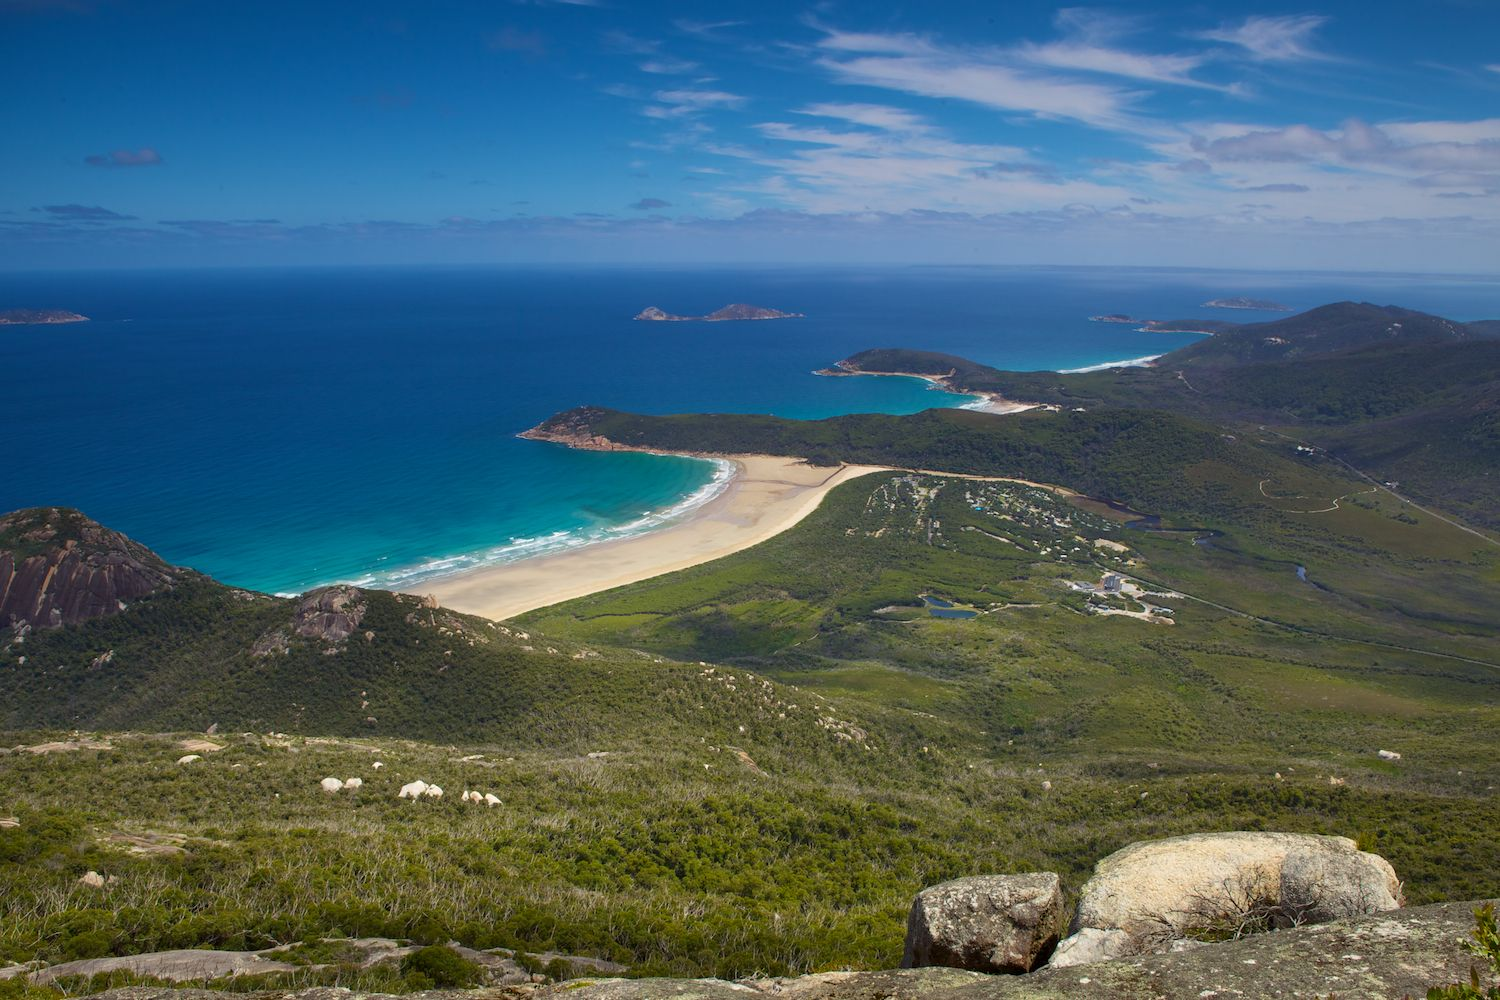 17 Best ideas about Wilsons Prom on Pinterest | Wilsons promontory ...